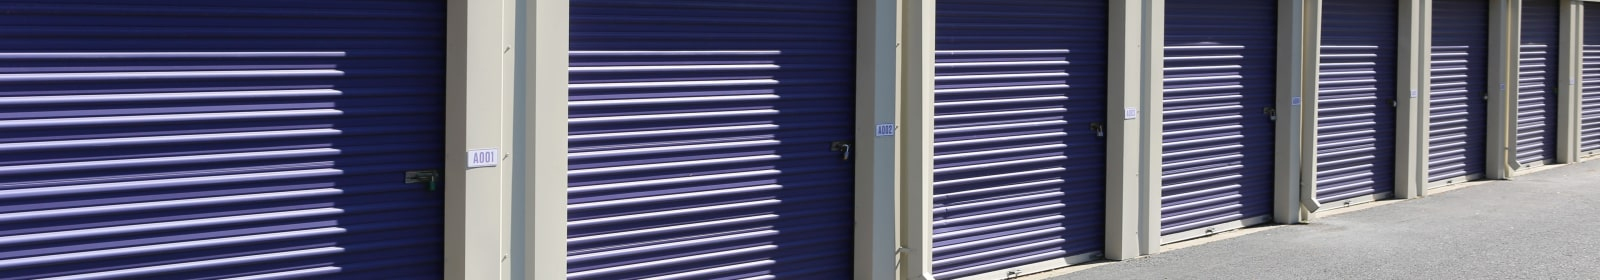 Contact StoreSmart Self-Storage in Spring Hill, Florida